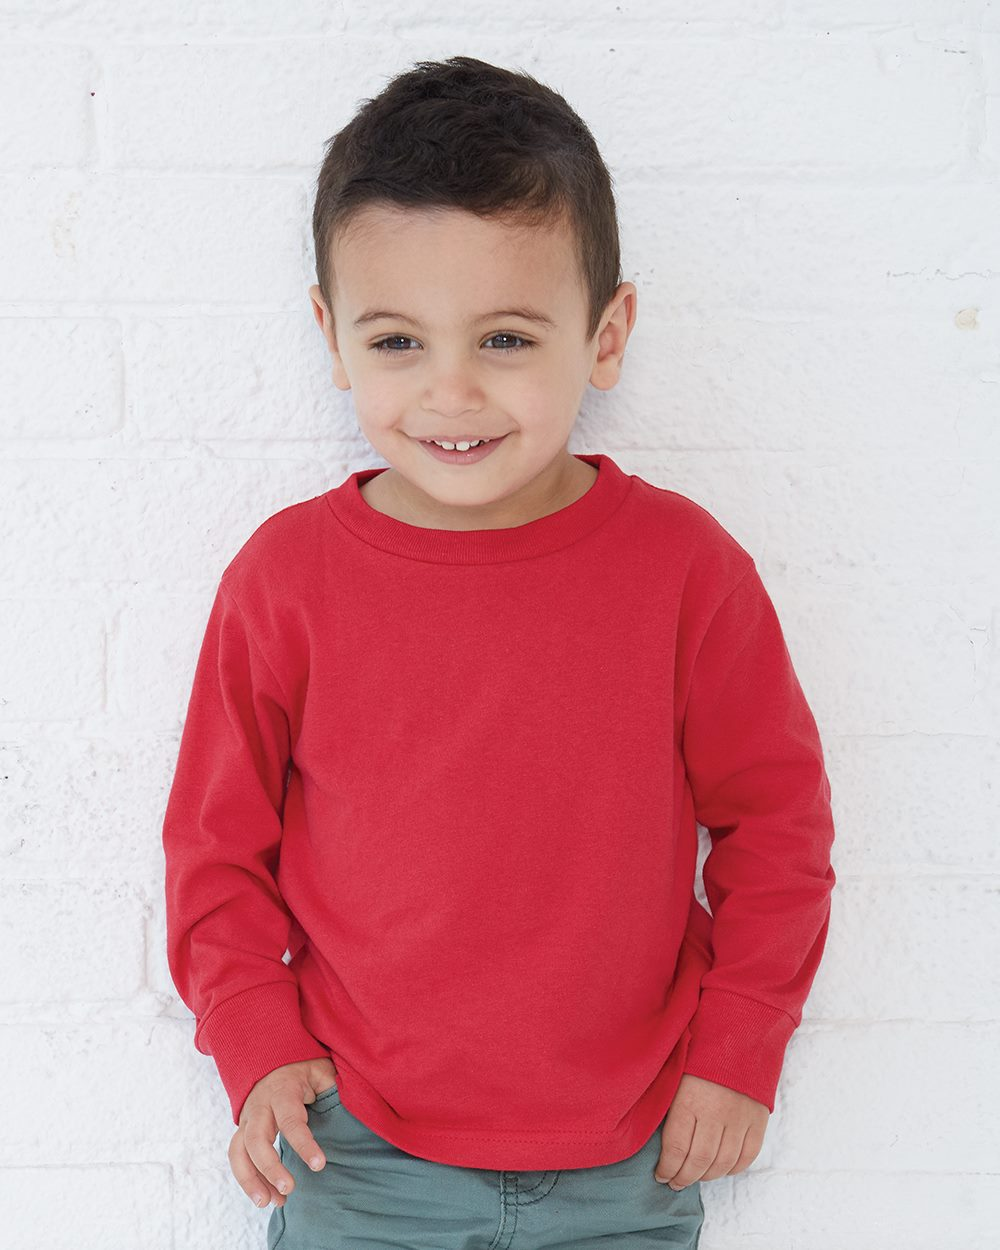 Personalized Toddler Long-Sleeve T-Shirt